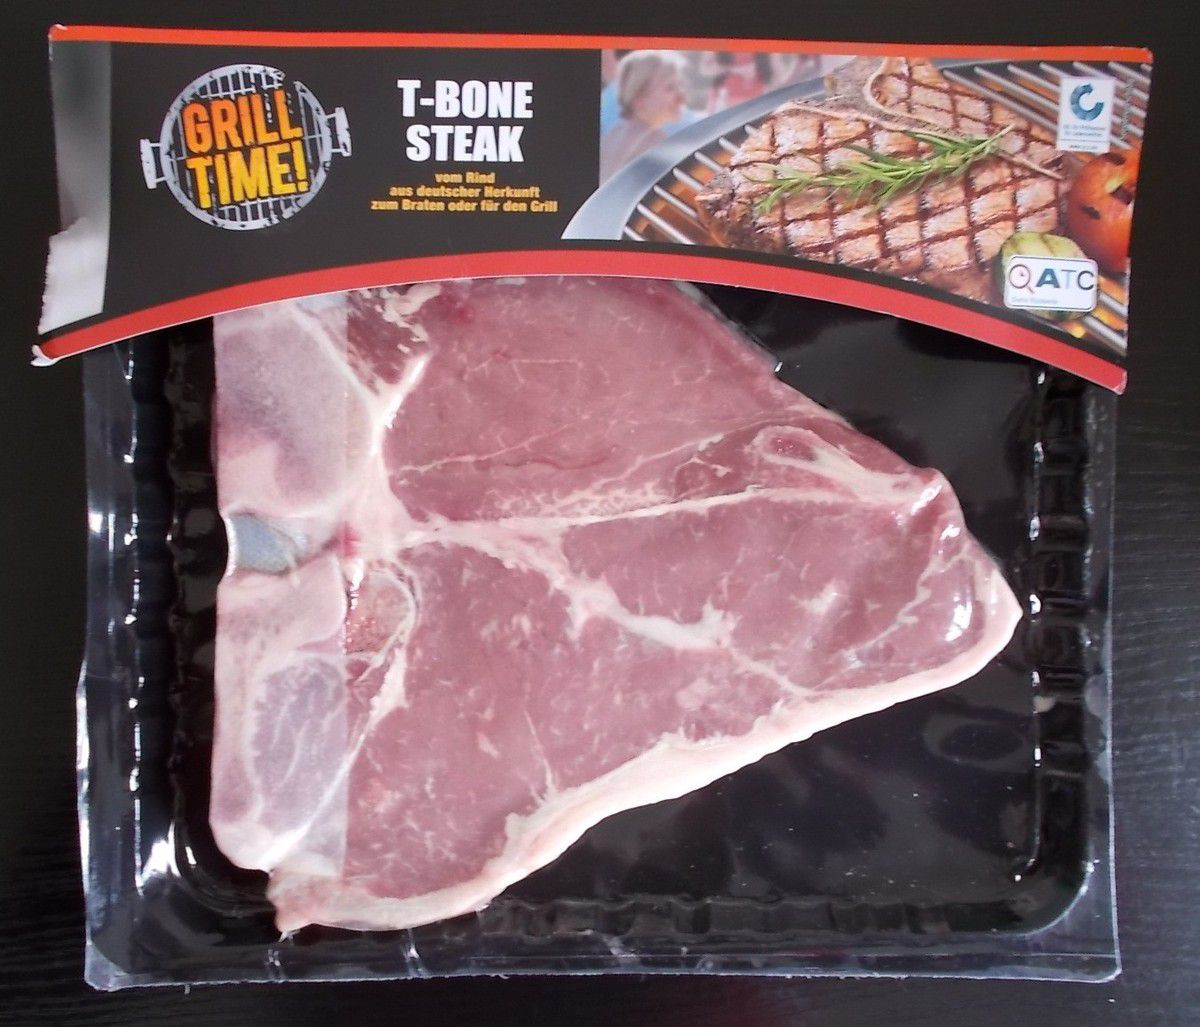 [Aldi Nord] Grill Time T-Bone Steak vom Rind